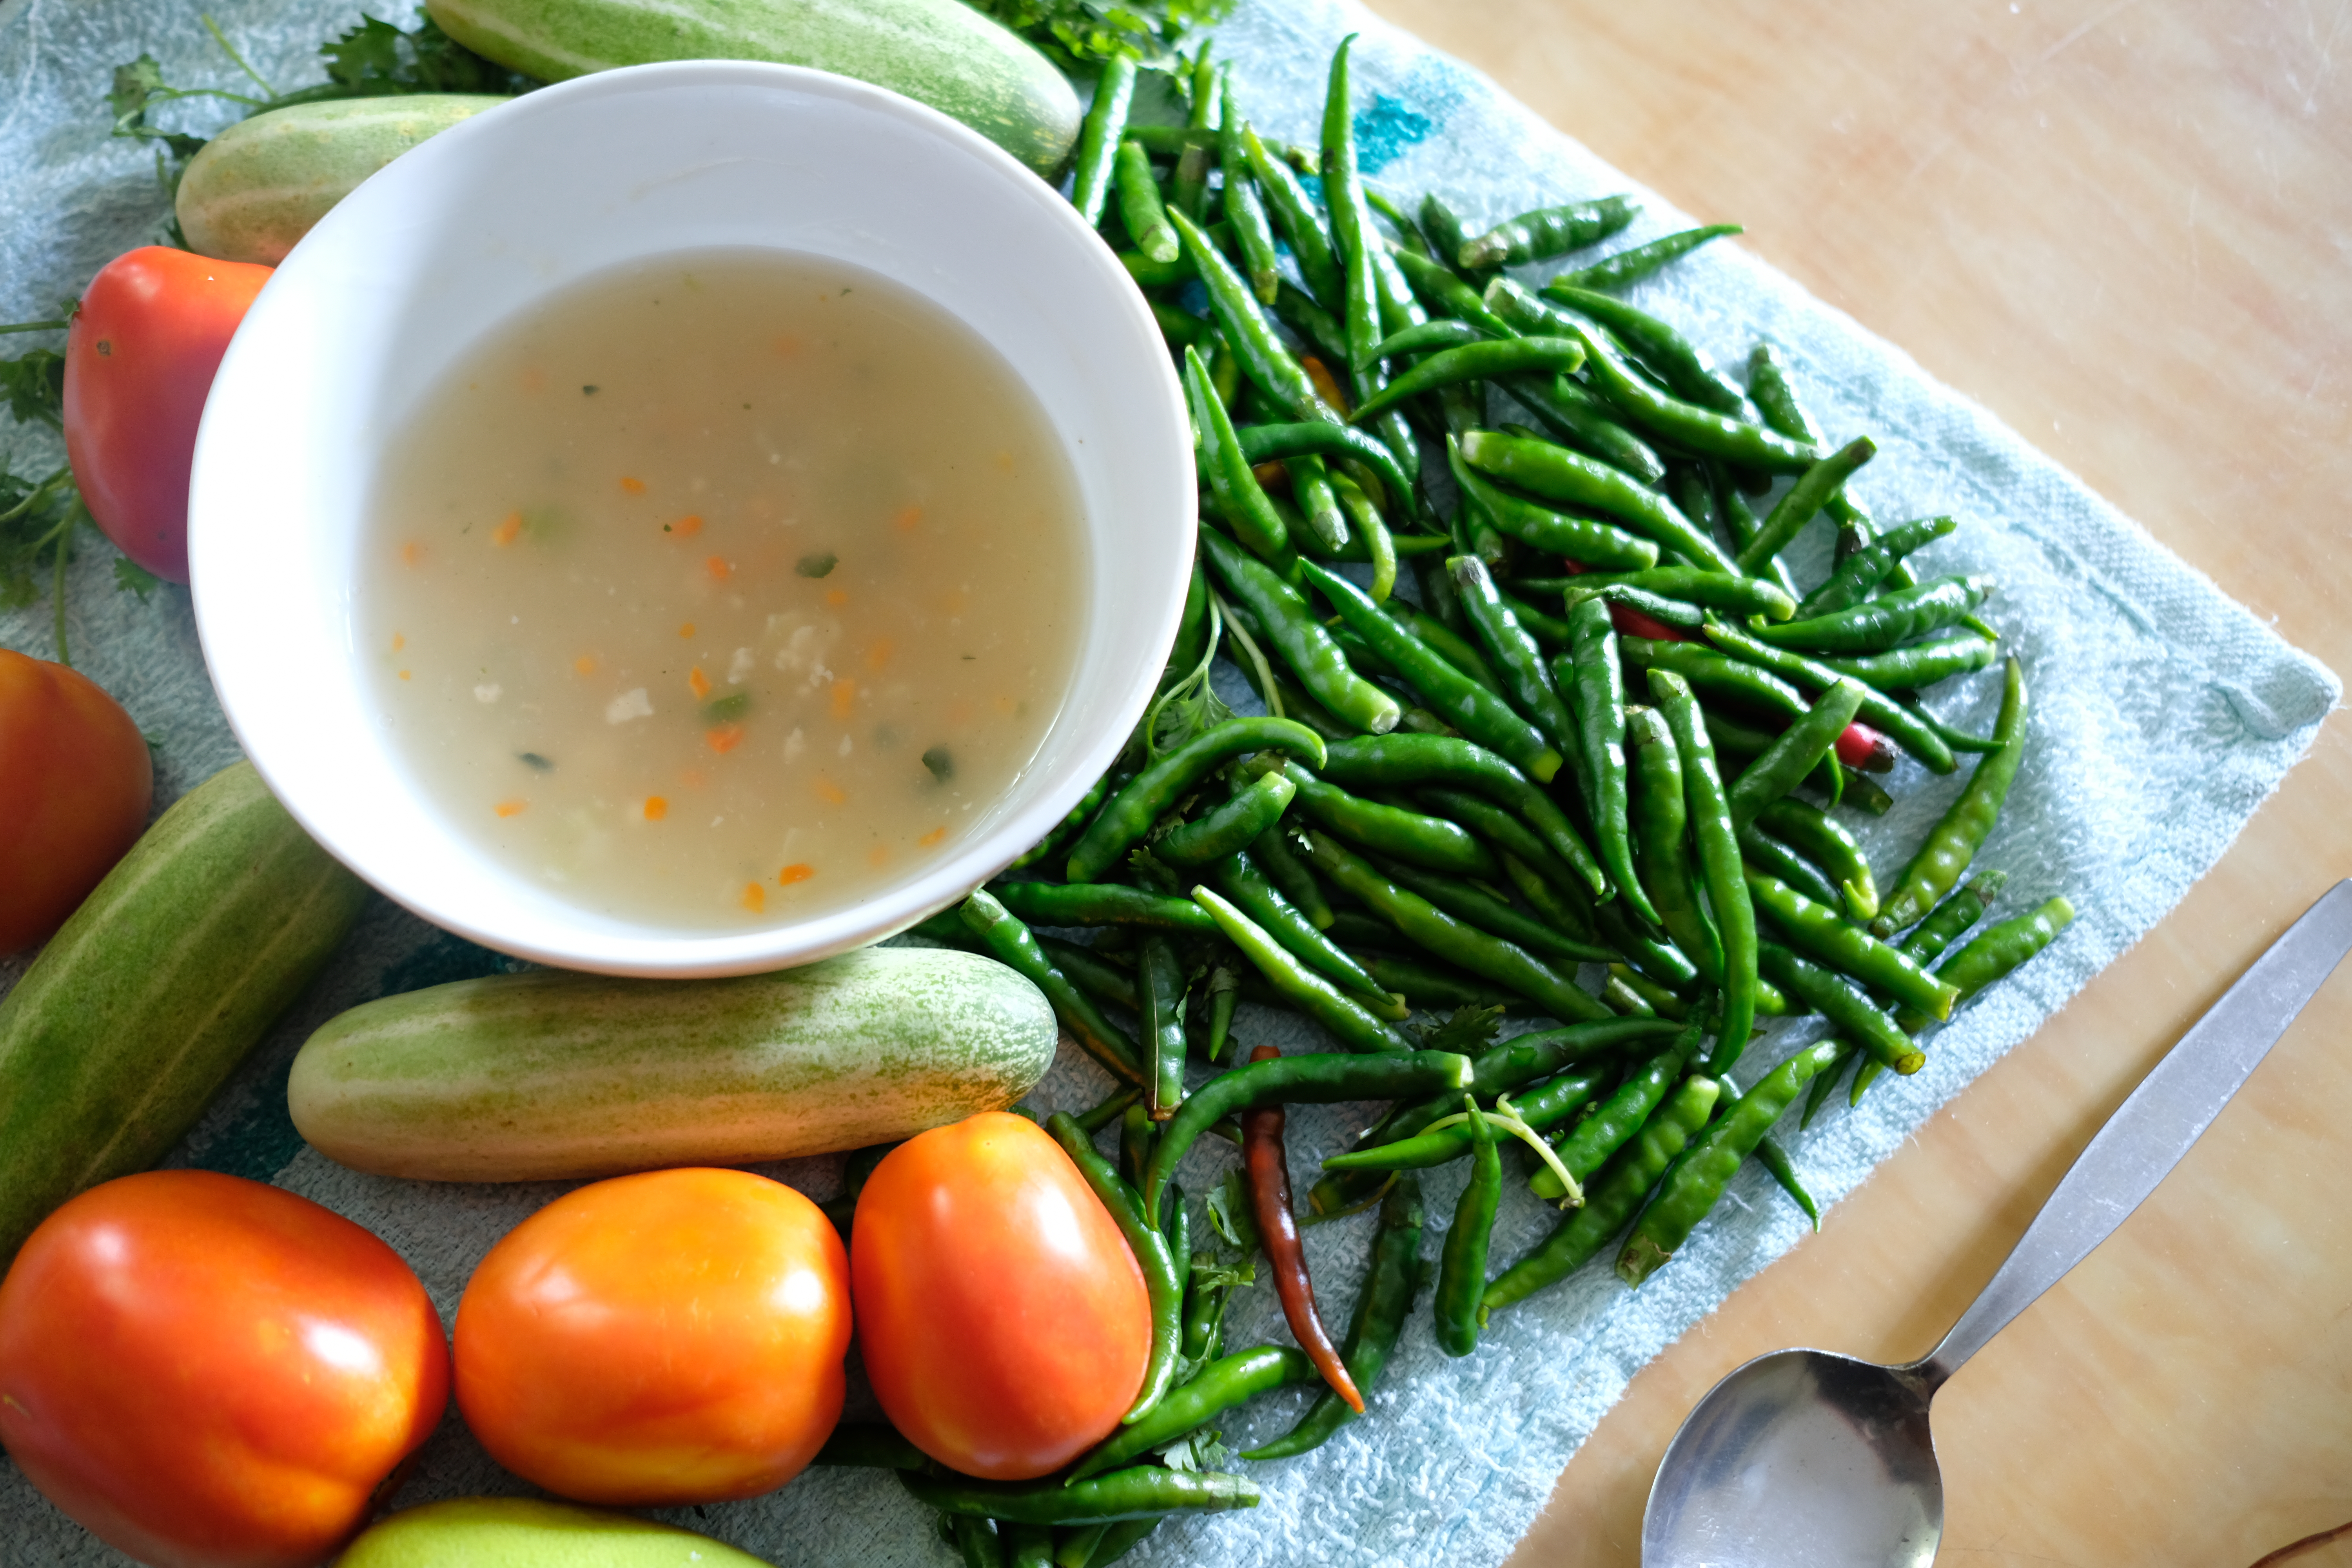 fresh fruits and vegetables with soup on table